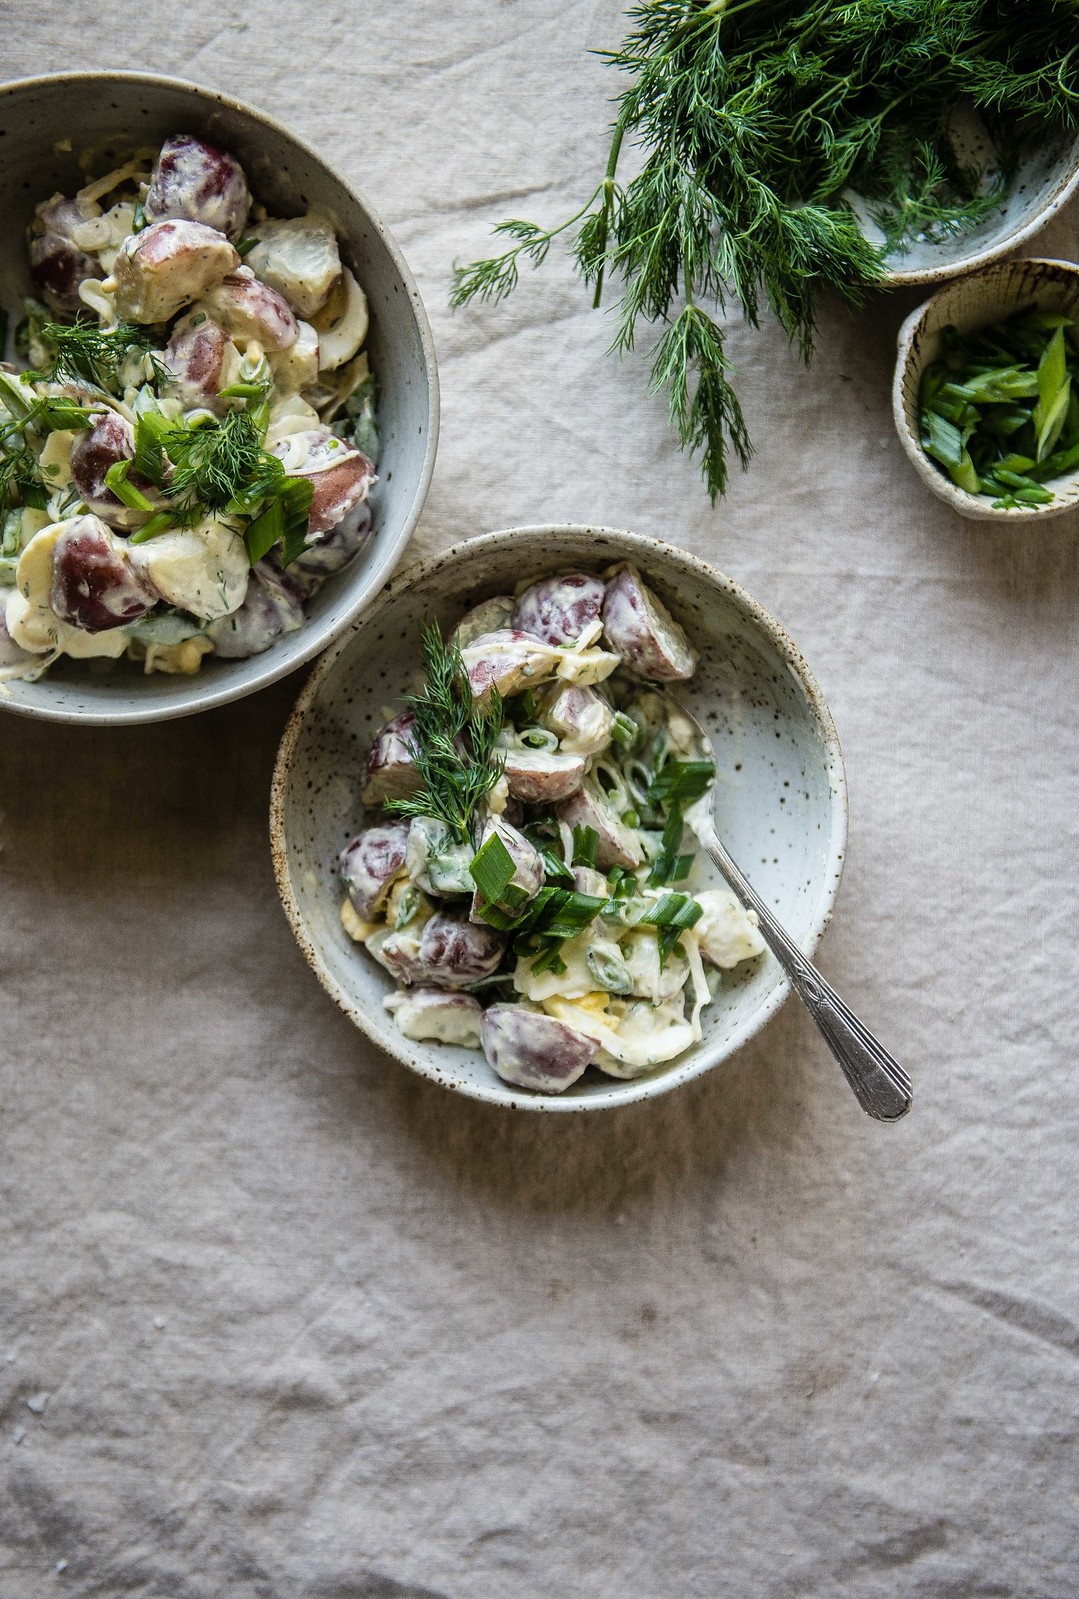 potatoes with sugar snaps, pickled shallots, & dill | two red bowls